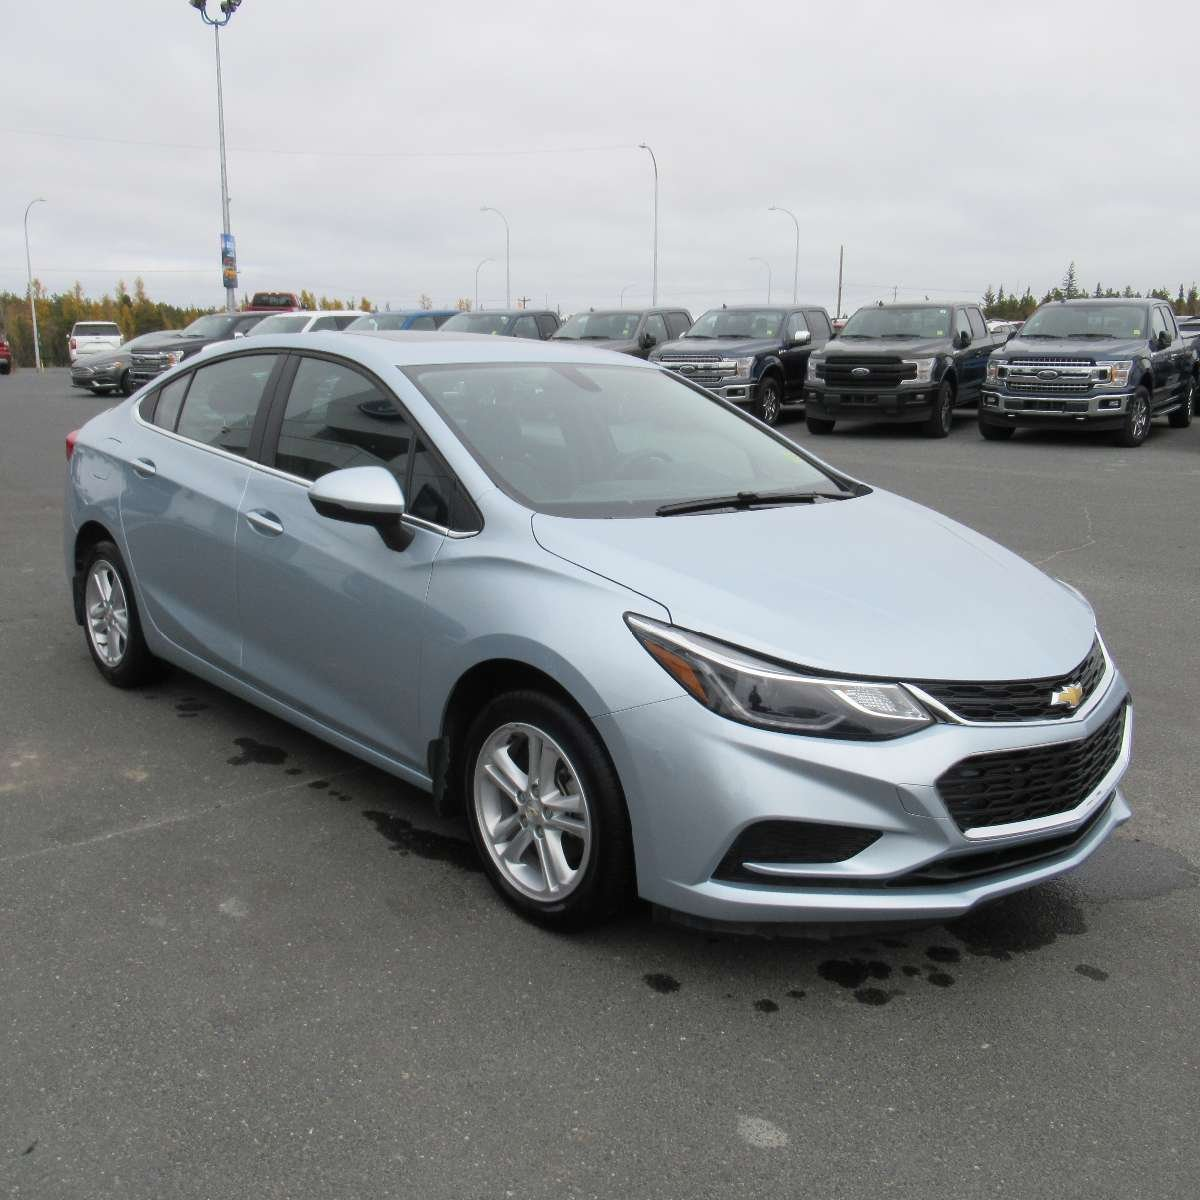 2017 Chevrolet Cruze for sale in Yellowknife, Northwest Territories